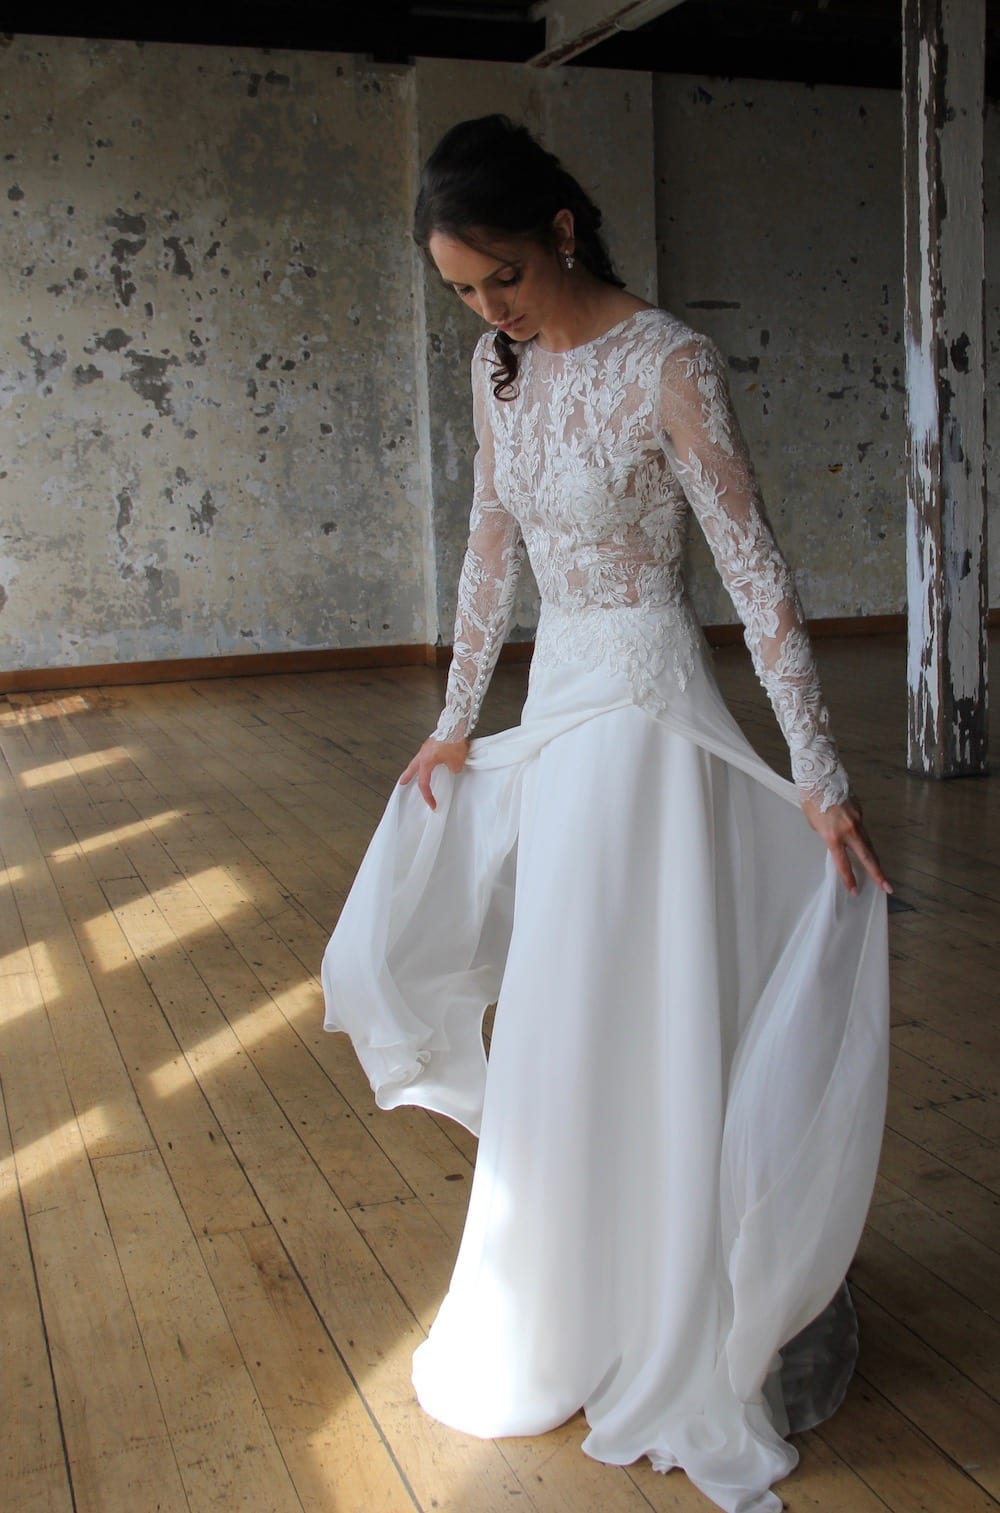 Female model wearing Vinka Design Modern Muse Wedding Dress. In chic warehouse the front detail of a gown with a high neckline and low back in silver-edged ivory lace, silk chiffon over viscose skirt with a train.